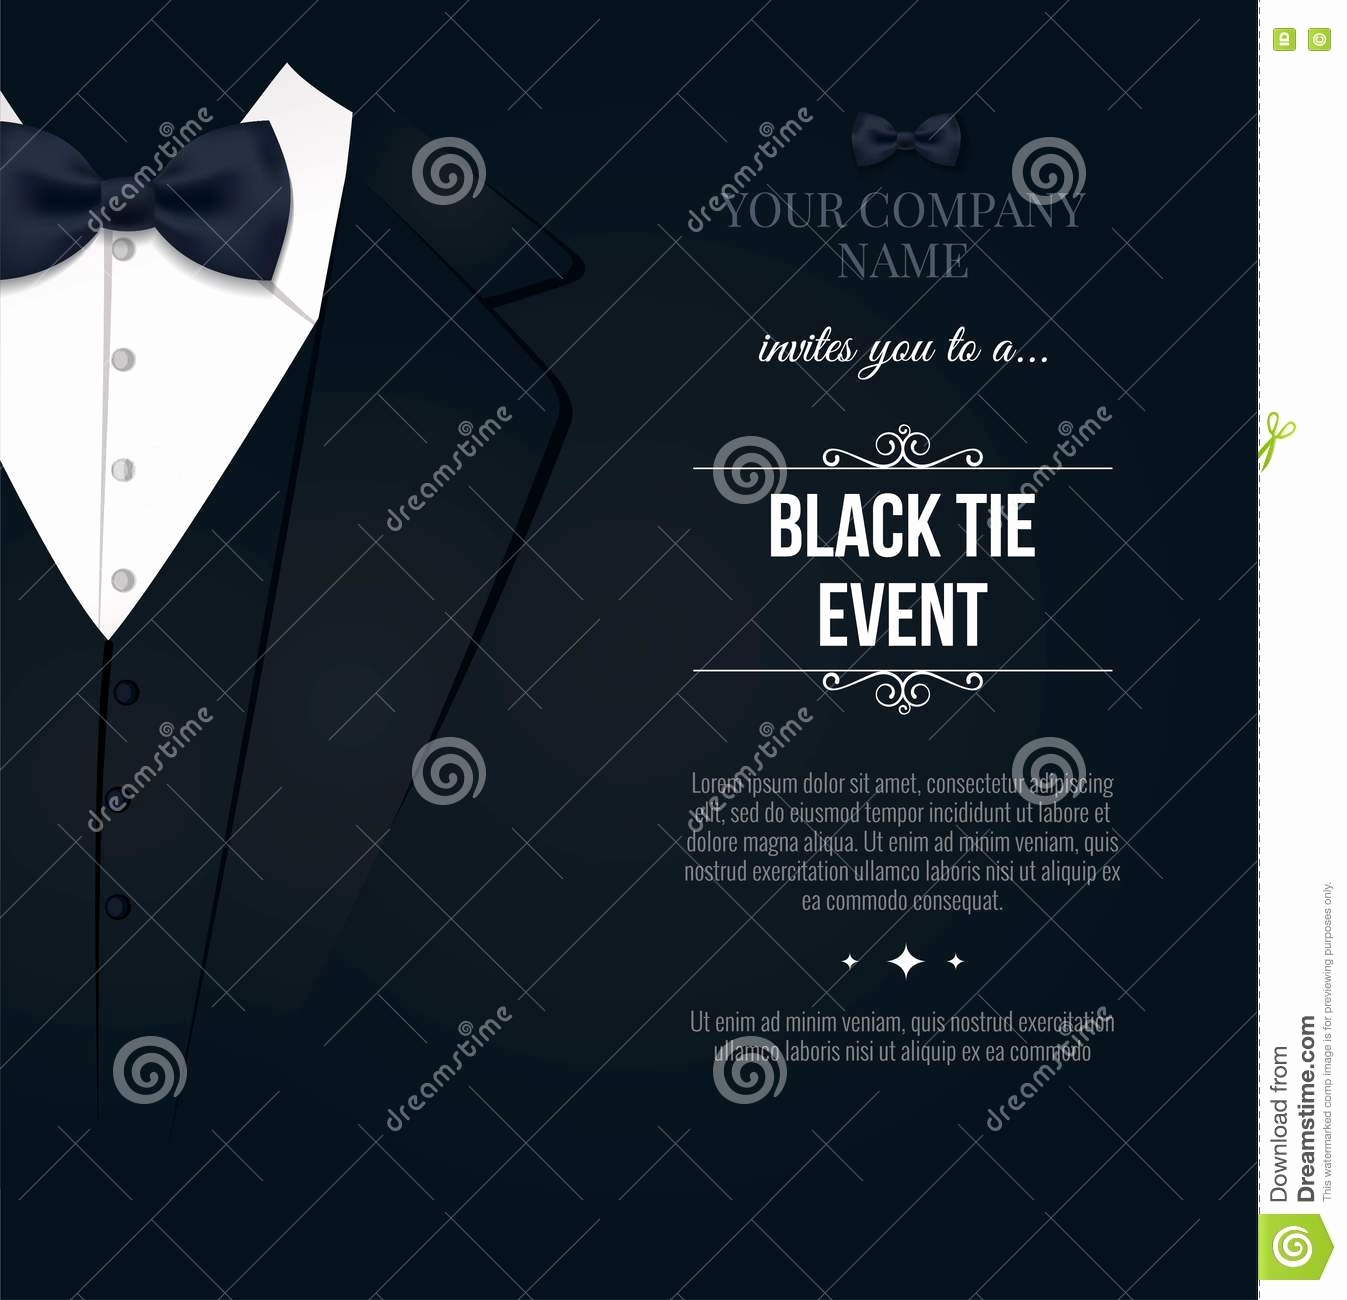 Black Tie event Invitation Beautiful Black Tie event Invitation Stock Illustration